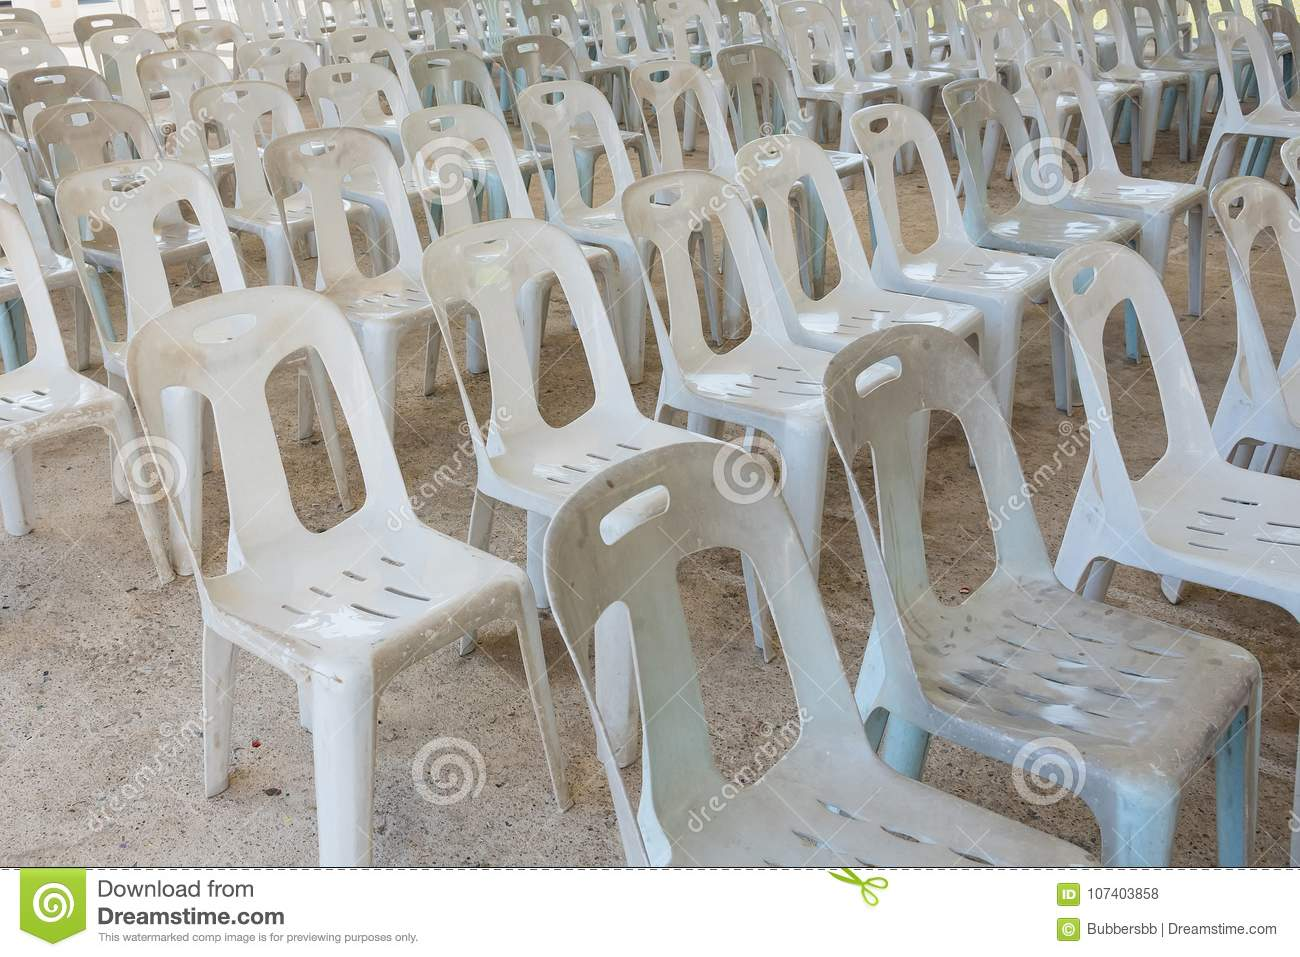 Swell White Plastic Chairs In Celebration And Outdoor Event Stock Uwap Interior Chair Design Uwaporg